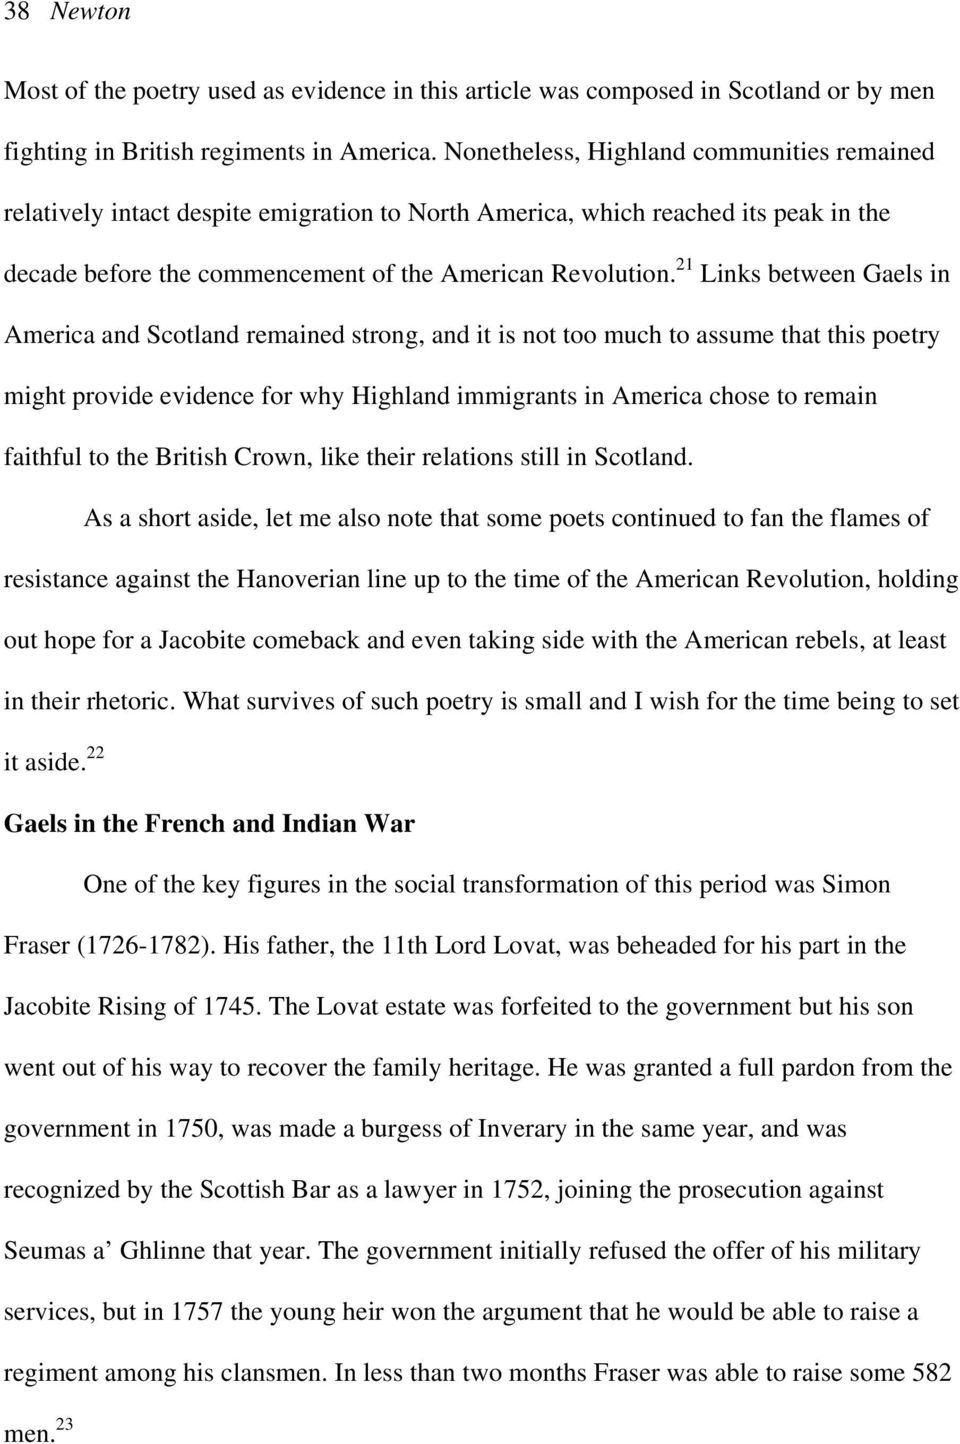 21 Links between Gaels in America and Scotland remained strong, and it is not too much to assume that this poetry might provide evidence for why Highland immigrants in America chose to remain